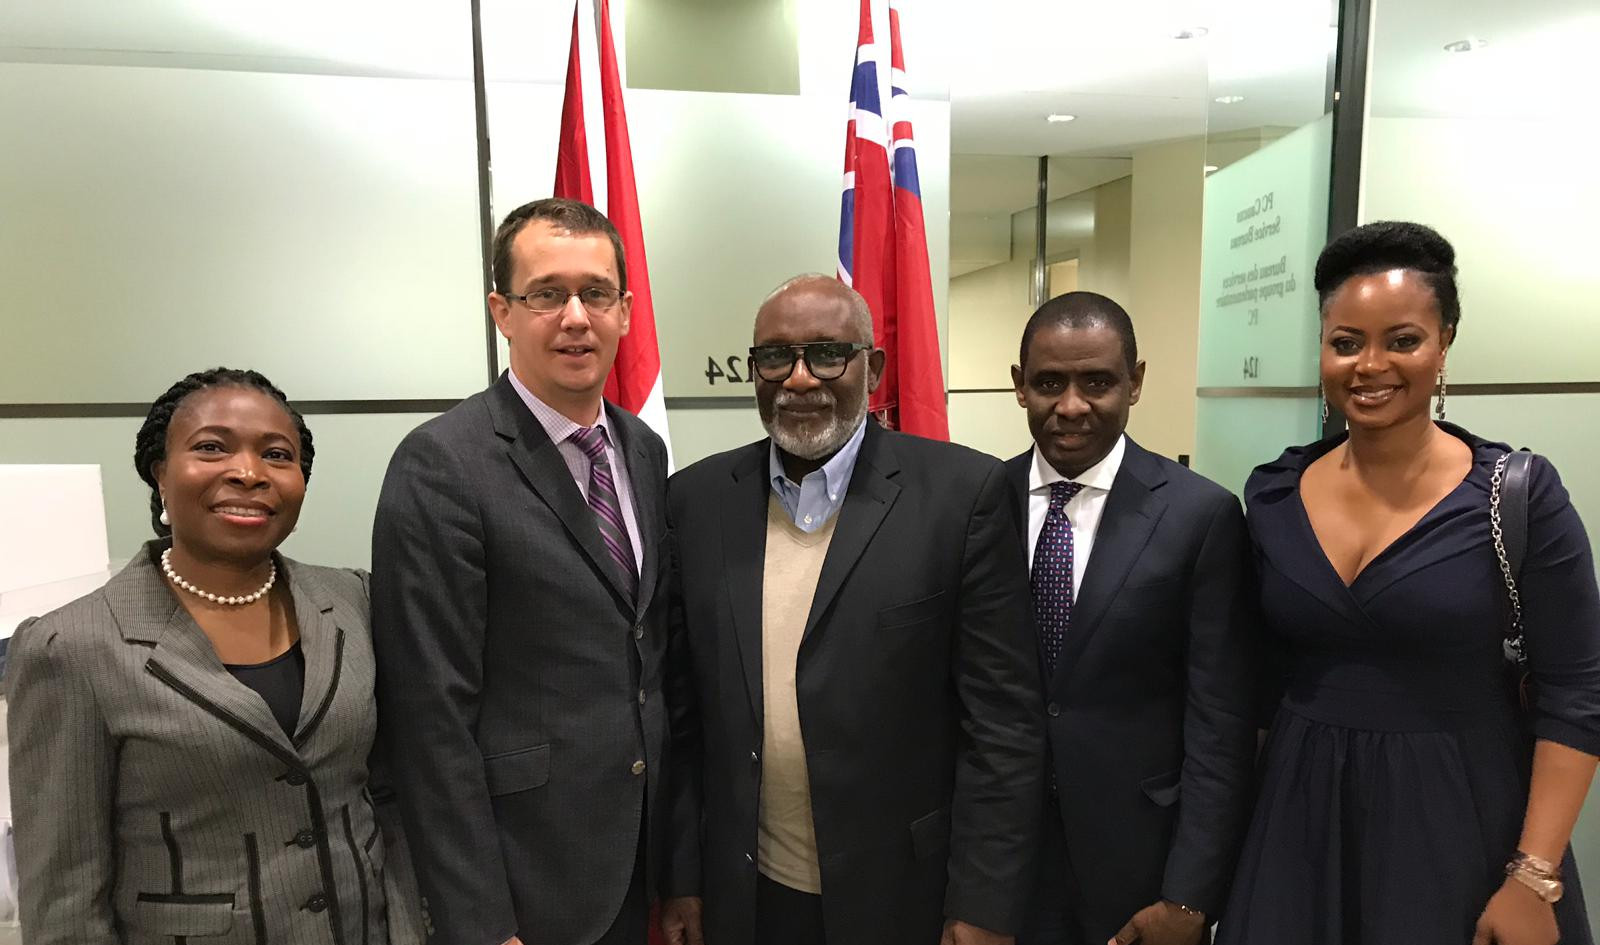 Dr Olu with Hon Monte Mc Naughton- Minister of Infrastructure, Canada His Excellency Governor Rotimi Akeredolu, Government of Ondo, Nigeria